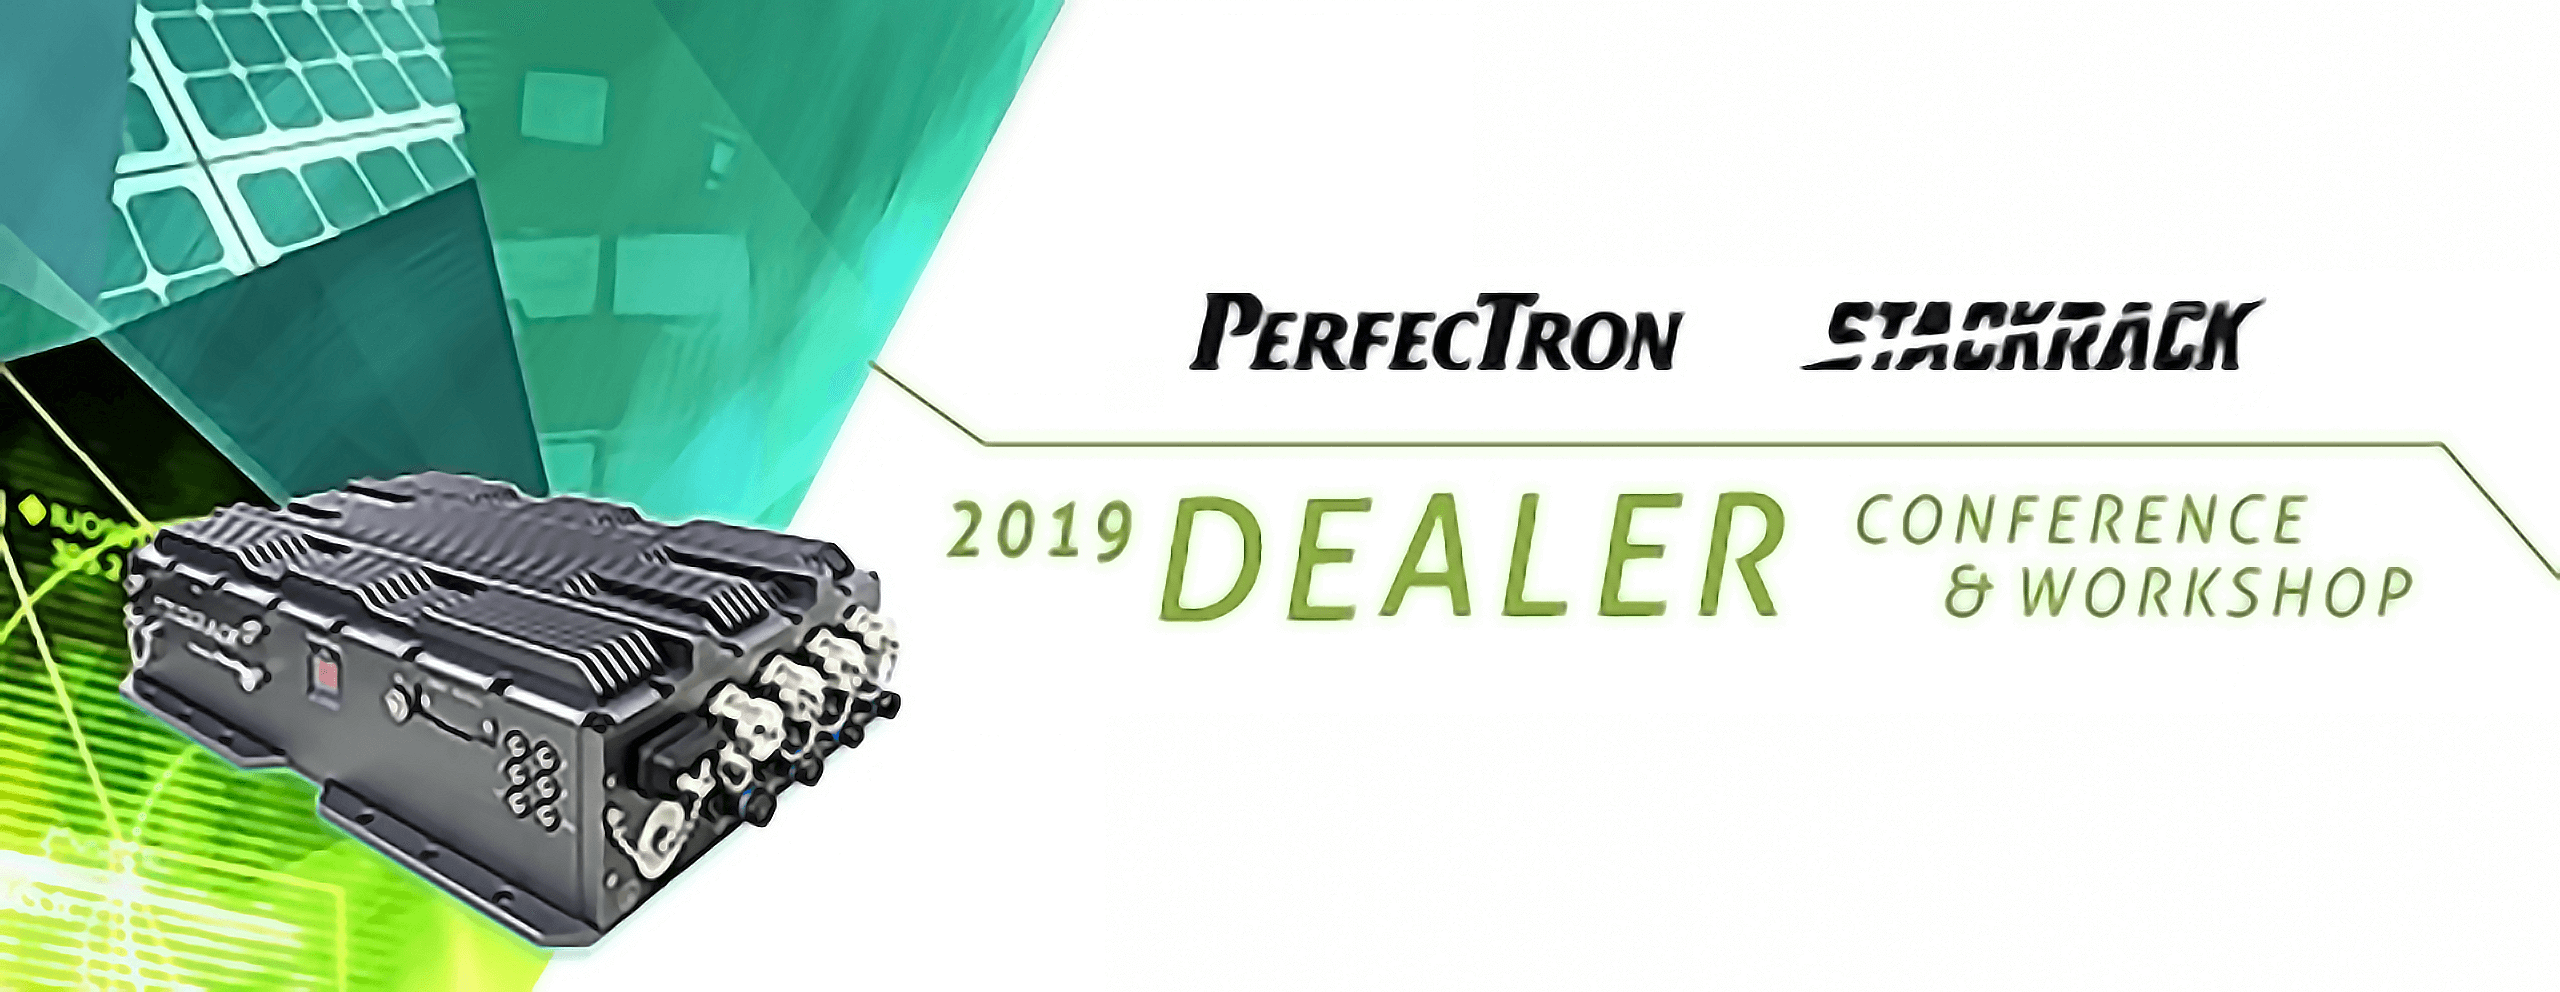 2019 DEALER CONFERENCE & WORKSHOP